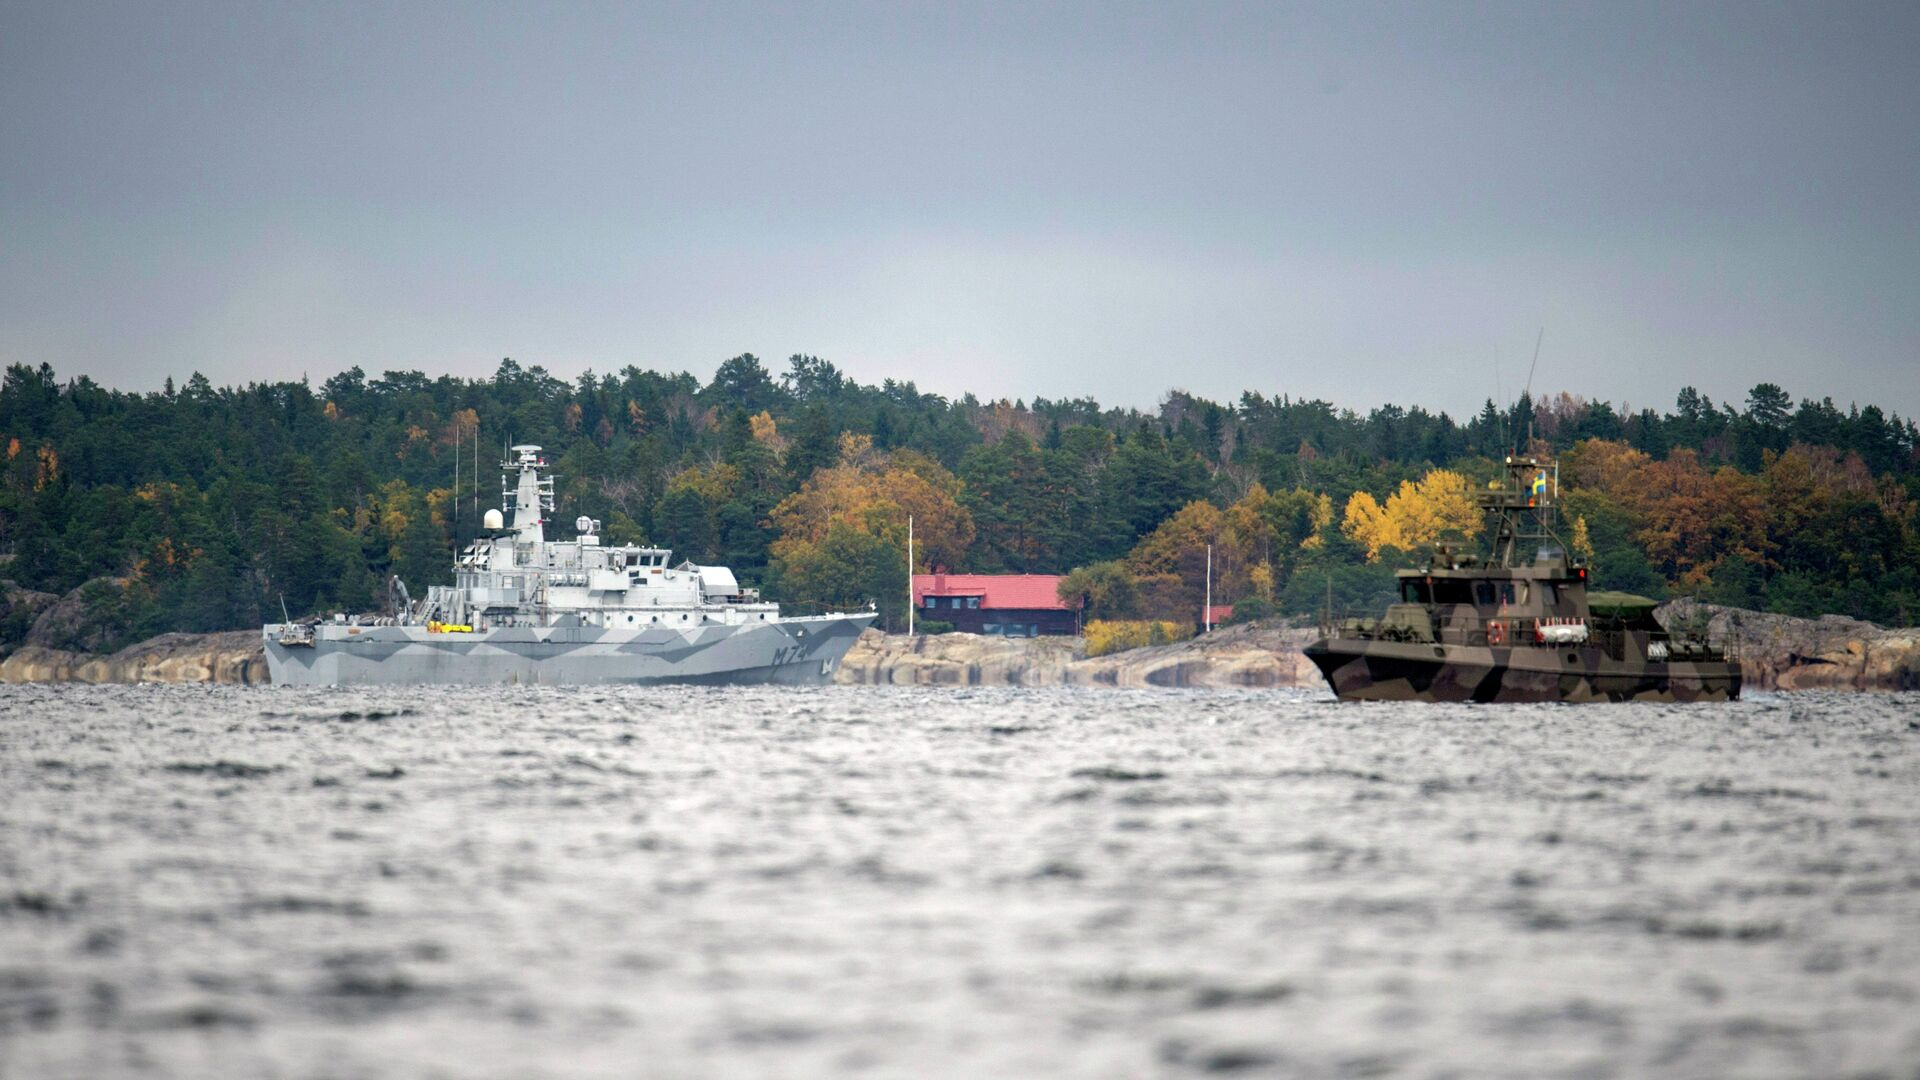 The Swedish minesweeper HMS Kullen, left, and a guard boat in Namdo Bay, Sweden,Tuesday, Oct. 21, 2014 on their fifth day of searching for a suspected foreign vessel in the Stockholm archipelago - Sputnik International, 1920, 15.09.2021